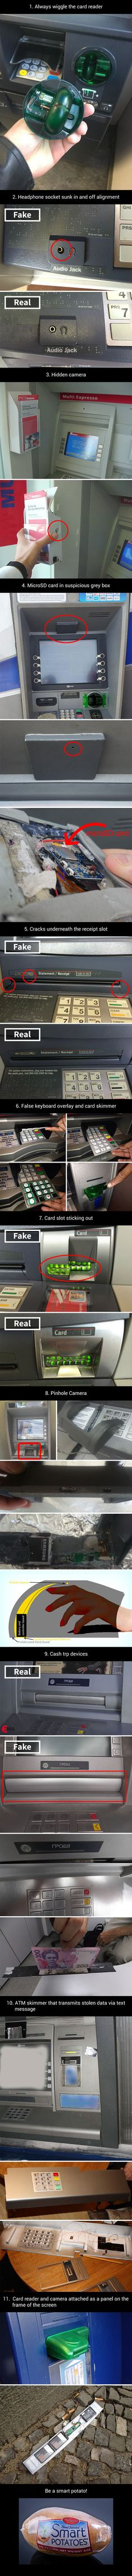 ATM scams that you should be aware of - Imgur